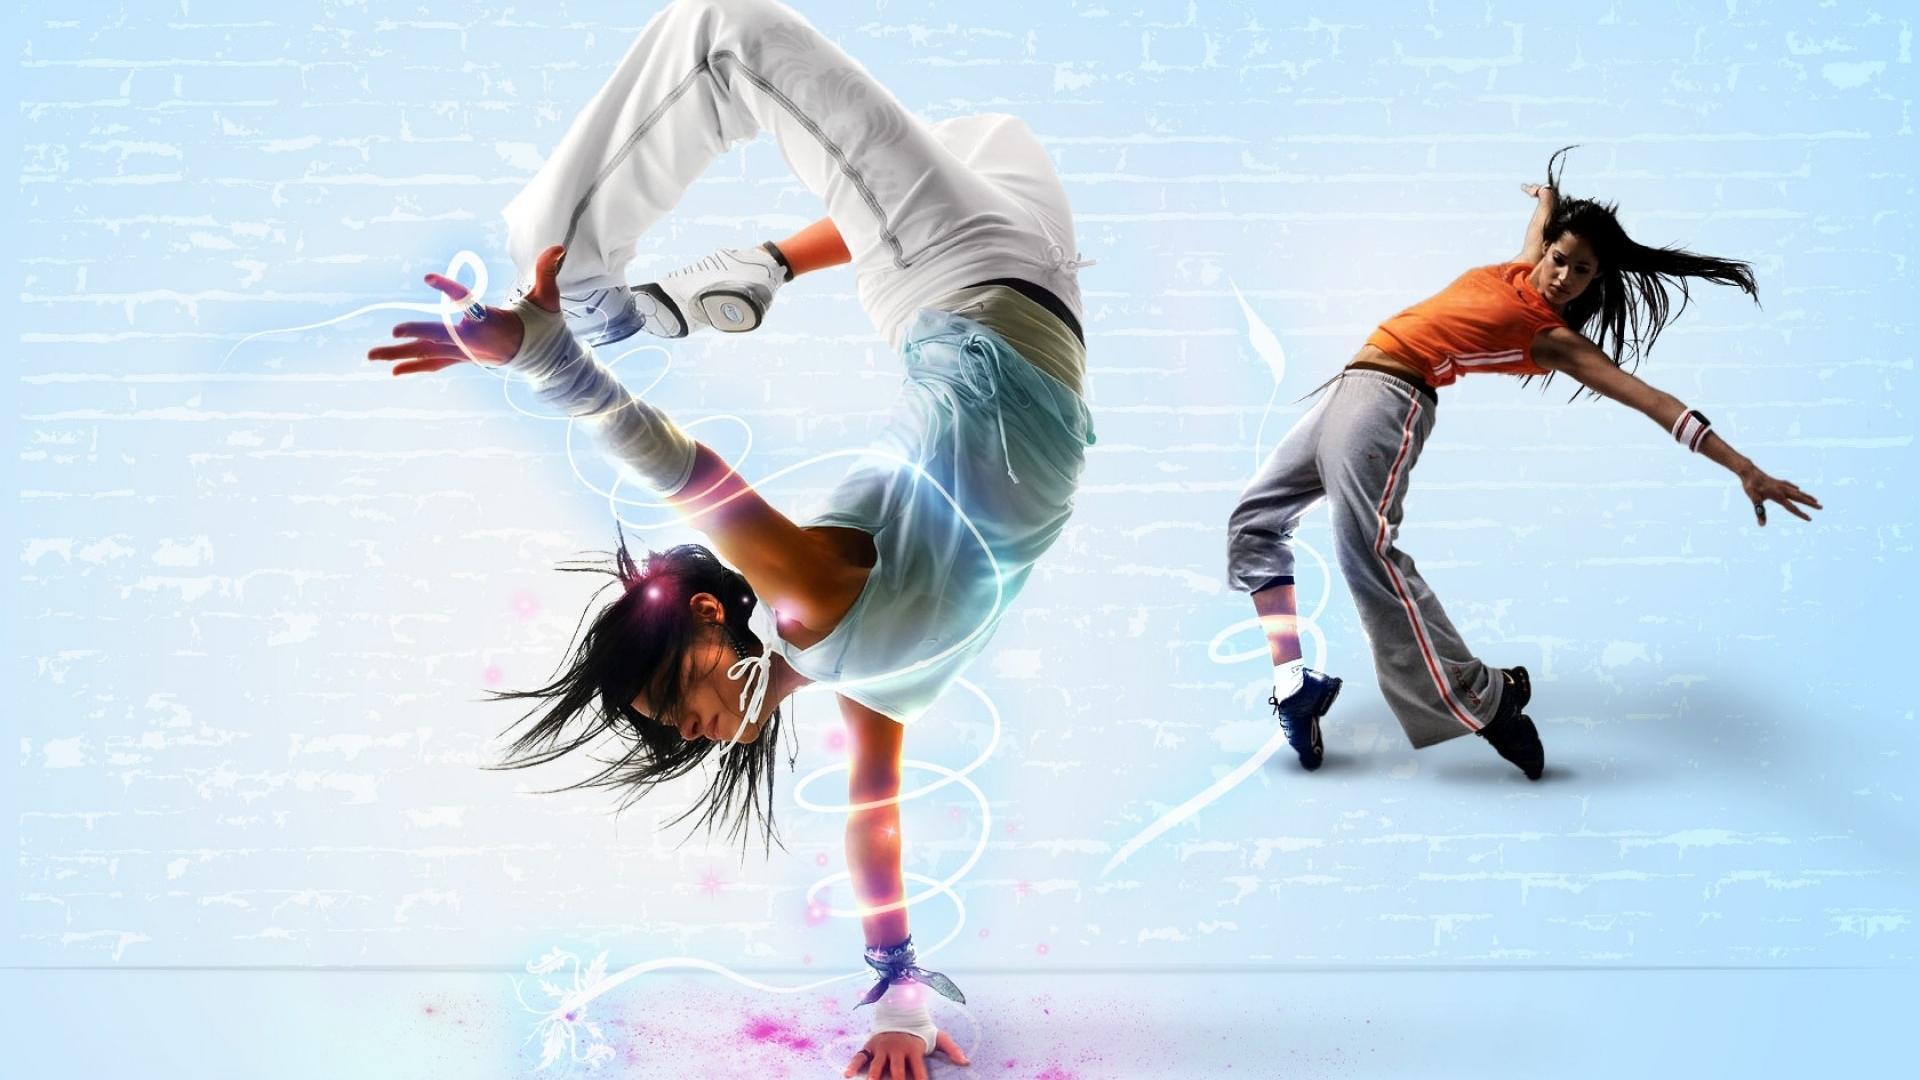 Image For > Hip Hop Dance Wallpapers Hd